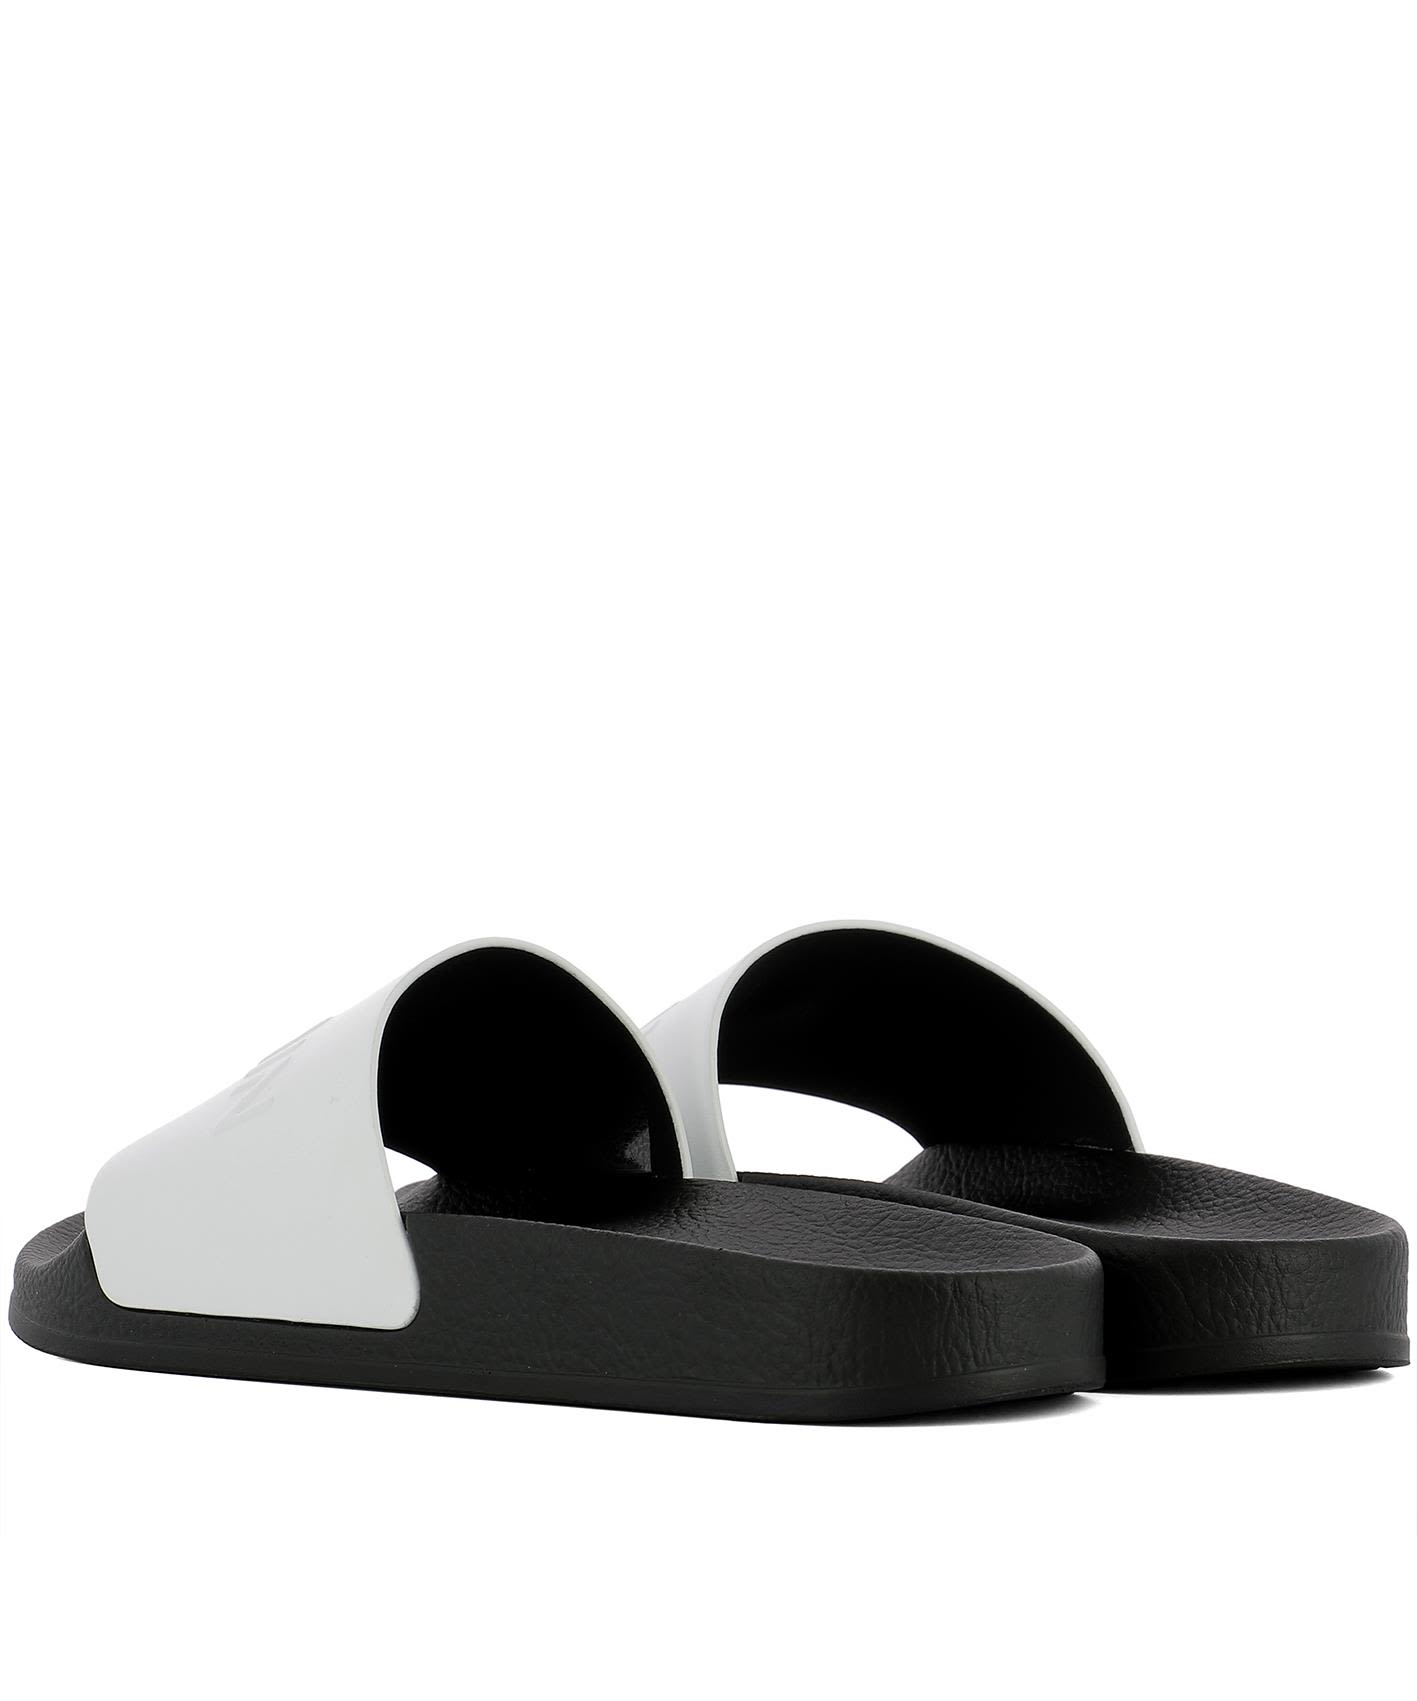 Balmain Rubber Sandals SxhMsL1cO